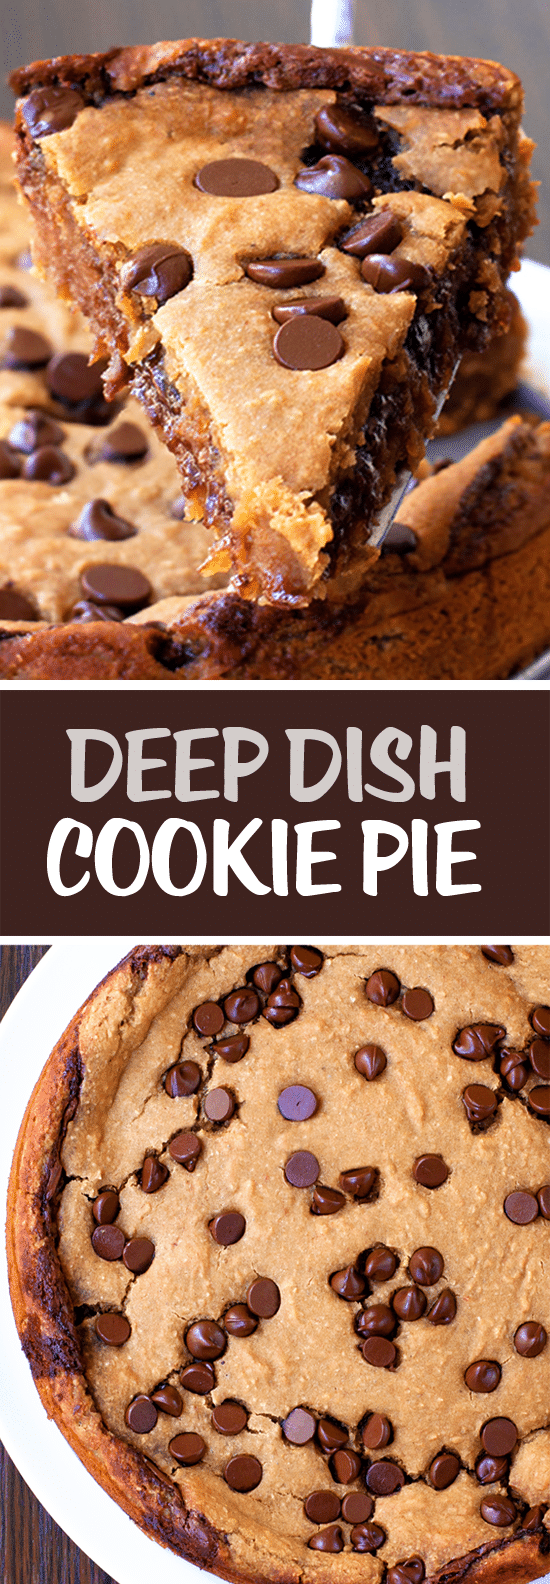 Secretly Healthy Deep Dish Cookie Pie Recipe (Vegan)